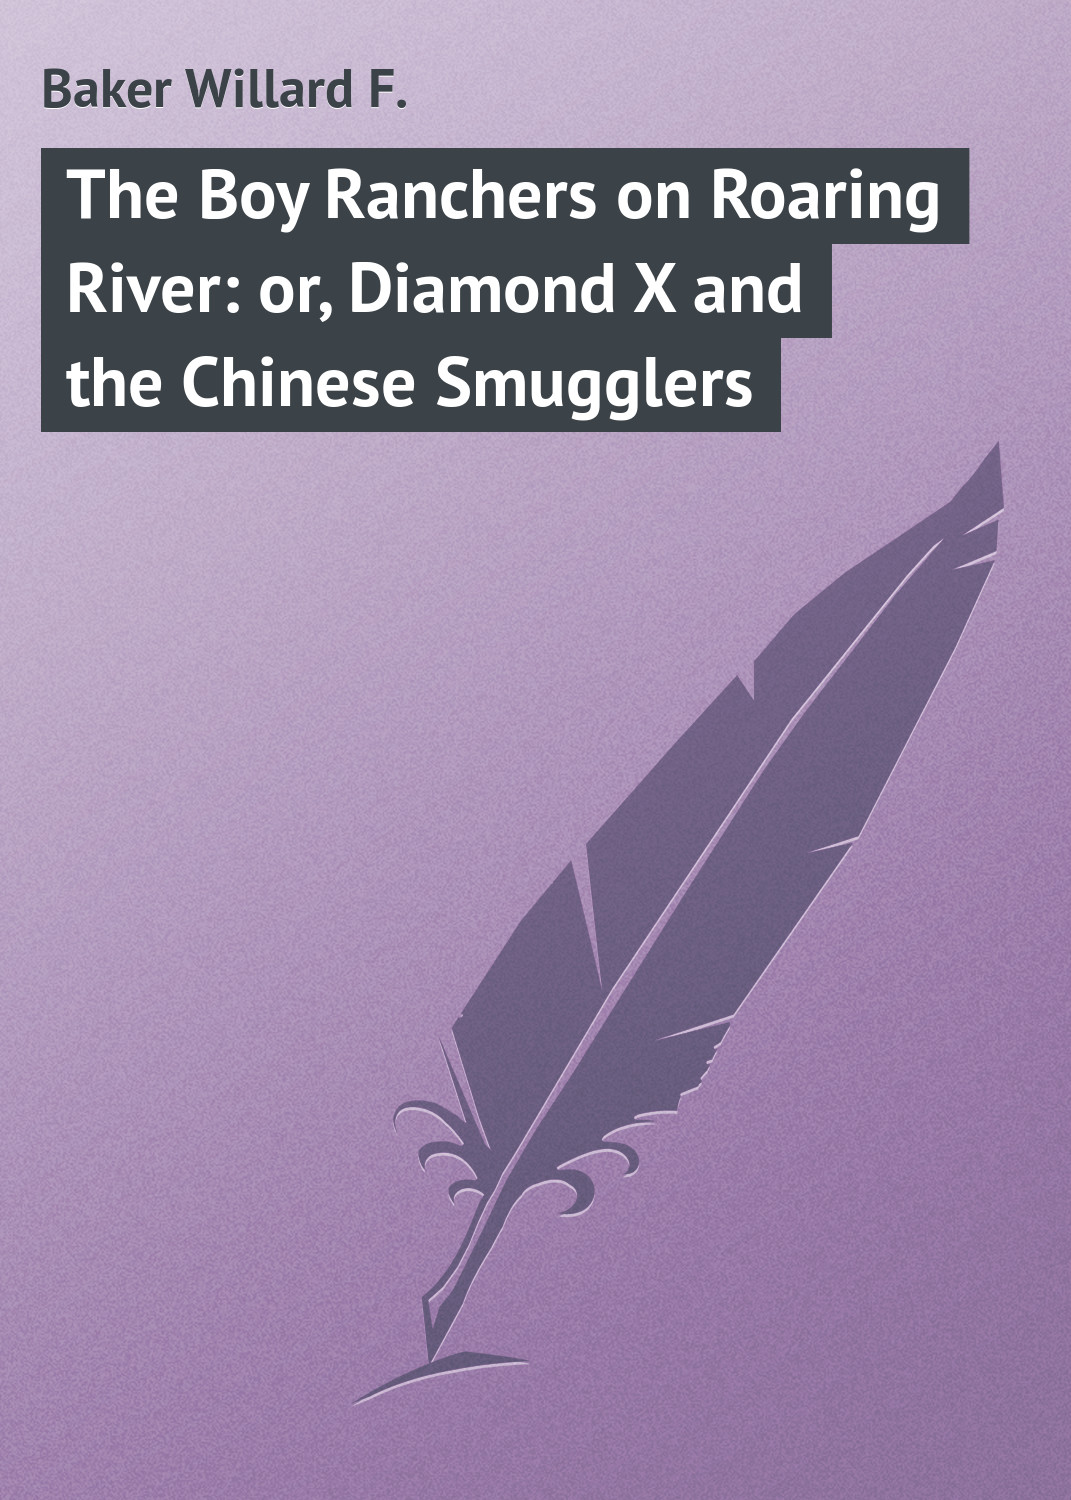 Baker Willard F. The Boy Ranchers on Roaring River: or, Diamond X and the Chinese Smugglers naiyue 9919 the beauty print draw 5d diamond painting diamond embroidery